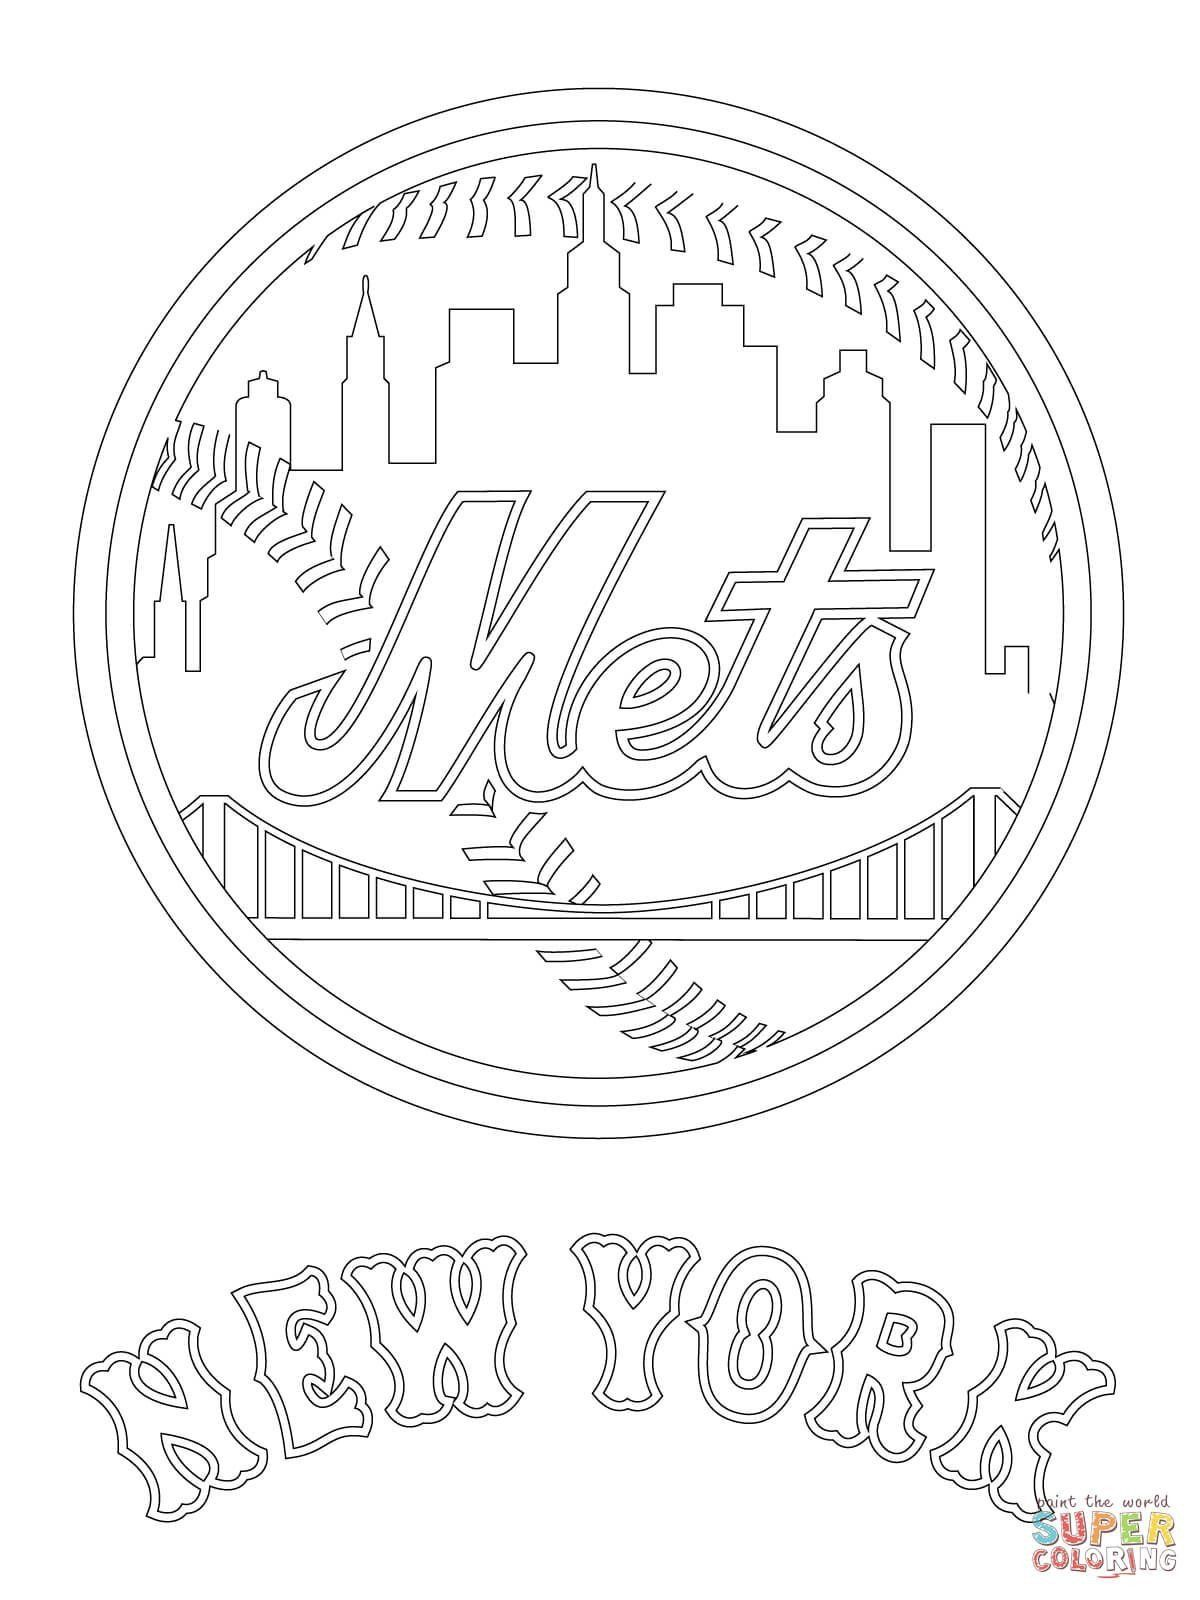 New York Yankees Coloring Luxury New York Mets Logo Coloring Page From Mlb Category Select F Baseball Coloring Pages New York Mets Logo Detailed Coloring Pages